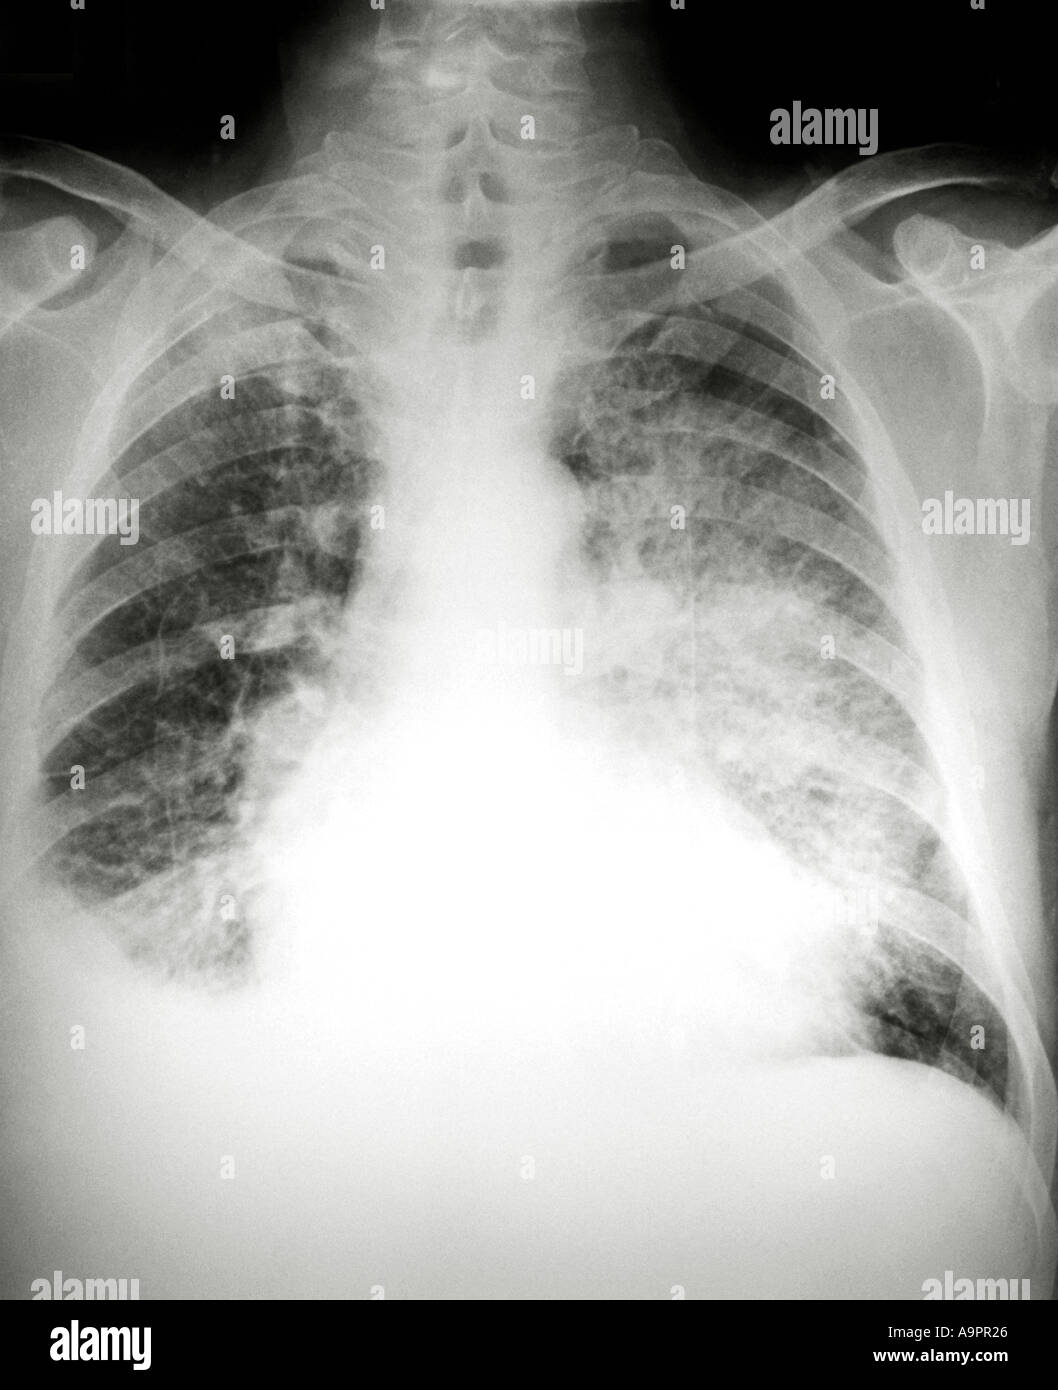 Normal chest x ray - Stock Image